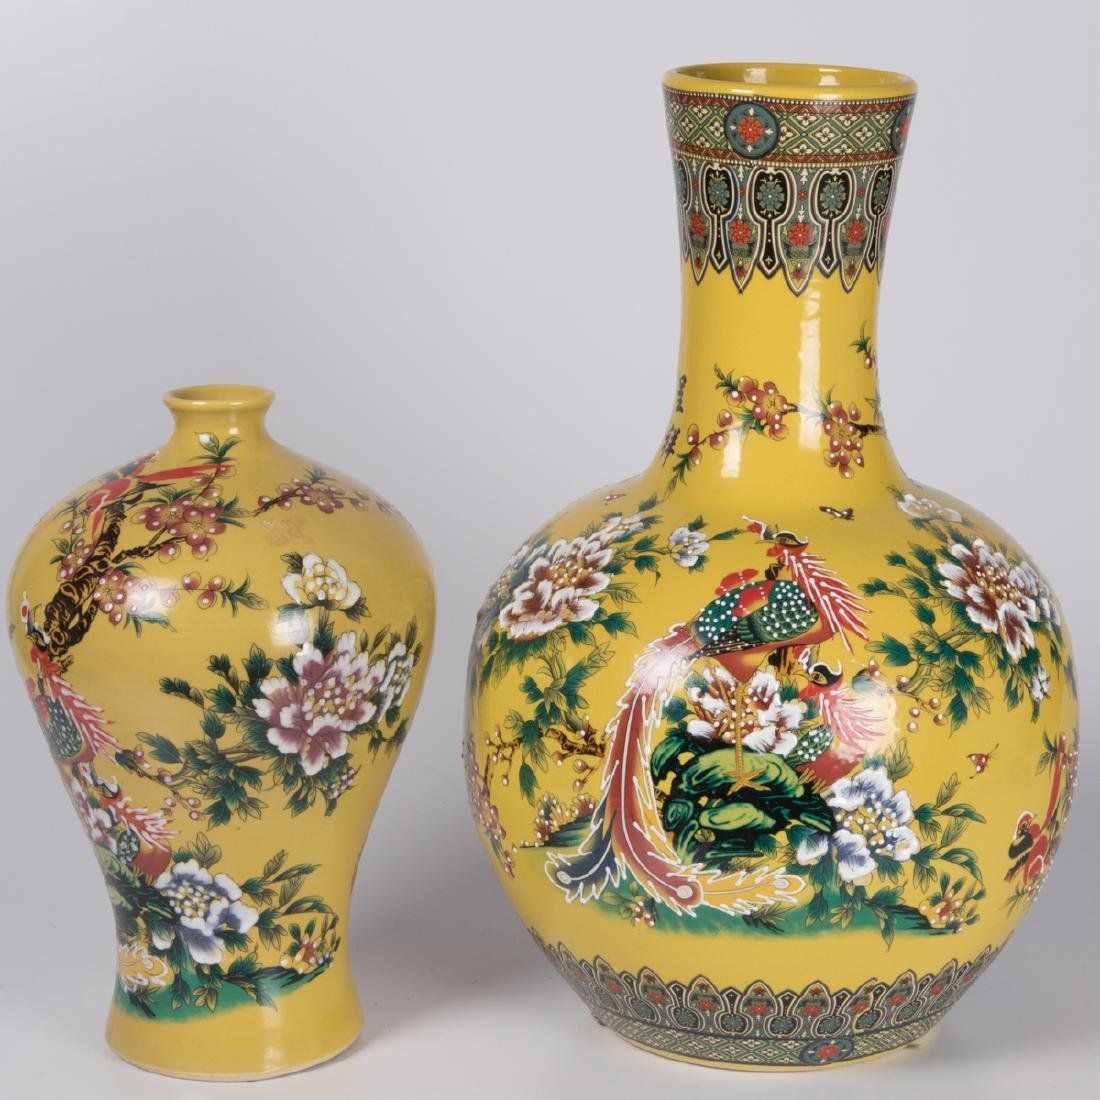 Two Chinese Famille Jaune Porcelain Vases, 20th